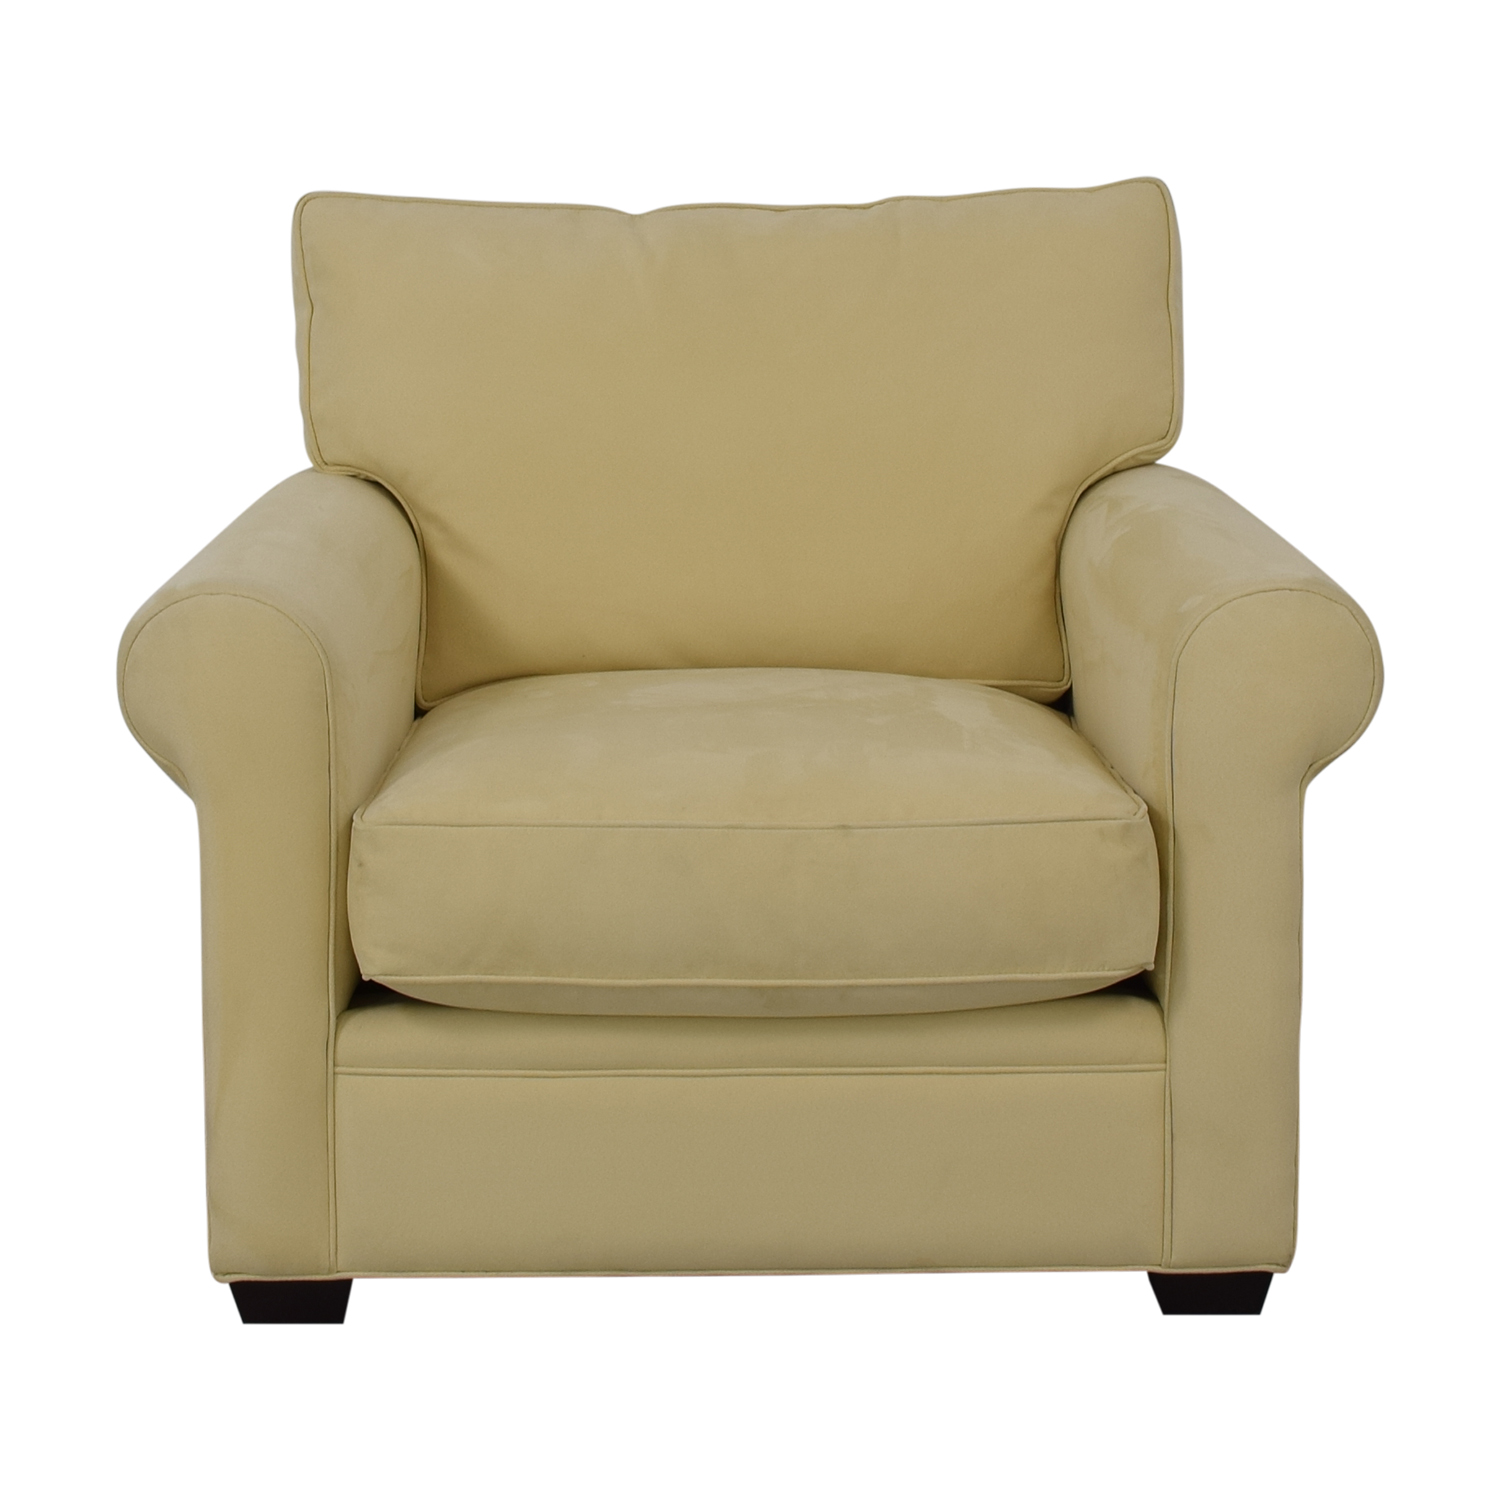 shop Crate & Barrel Yellow Oversized Accent Chair Crate & Barrel Accent Chairs